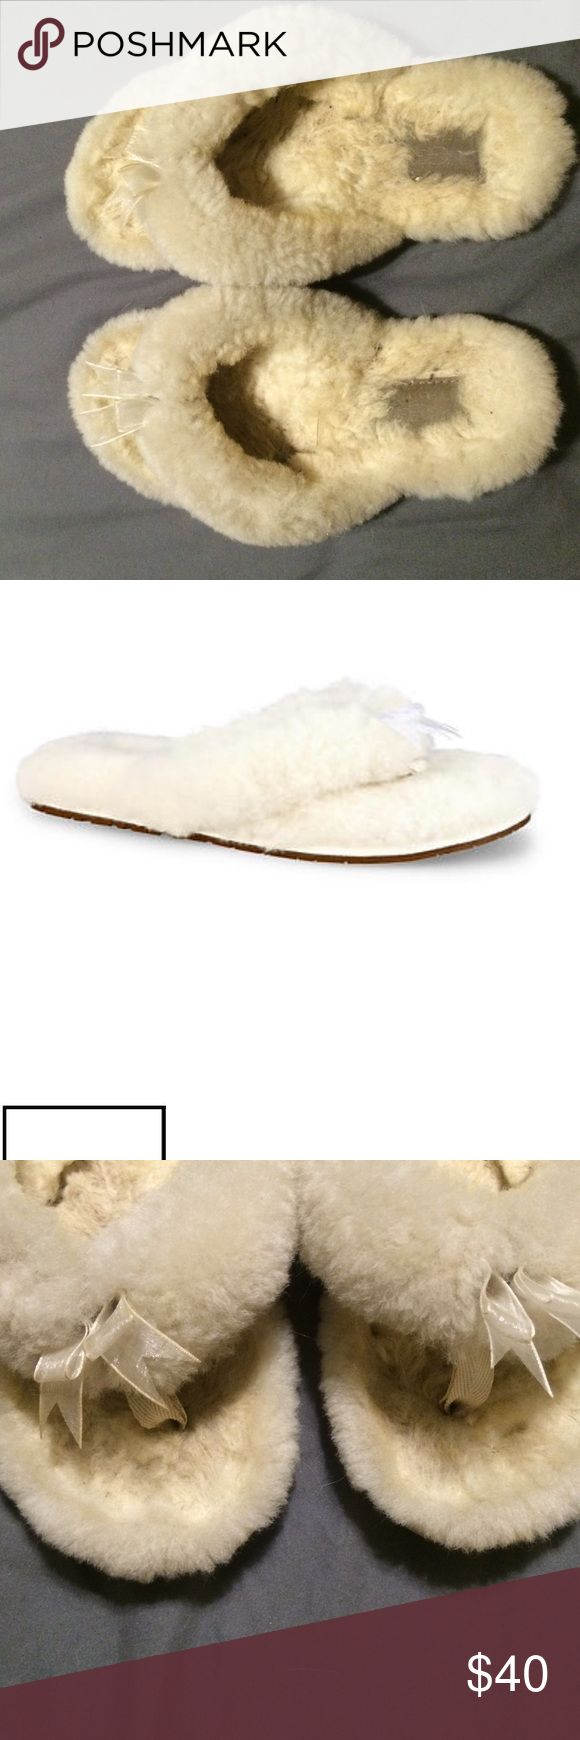 Ugg slipper flip flops Gently used ugg womens cream flip flop slippers UGG Shoes Slippers